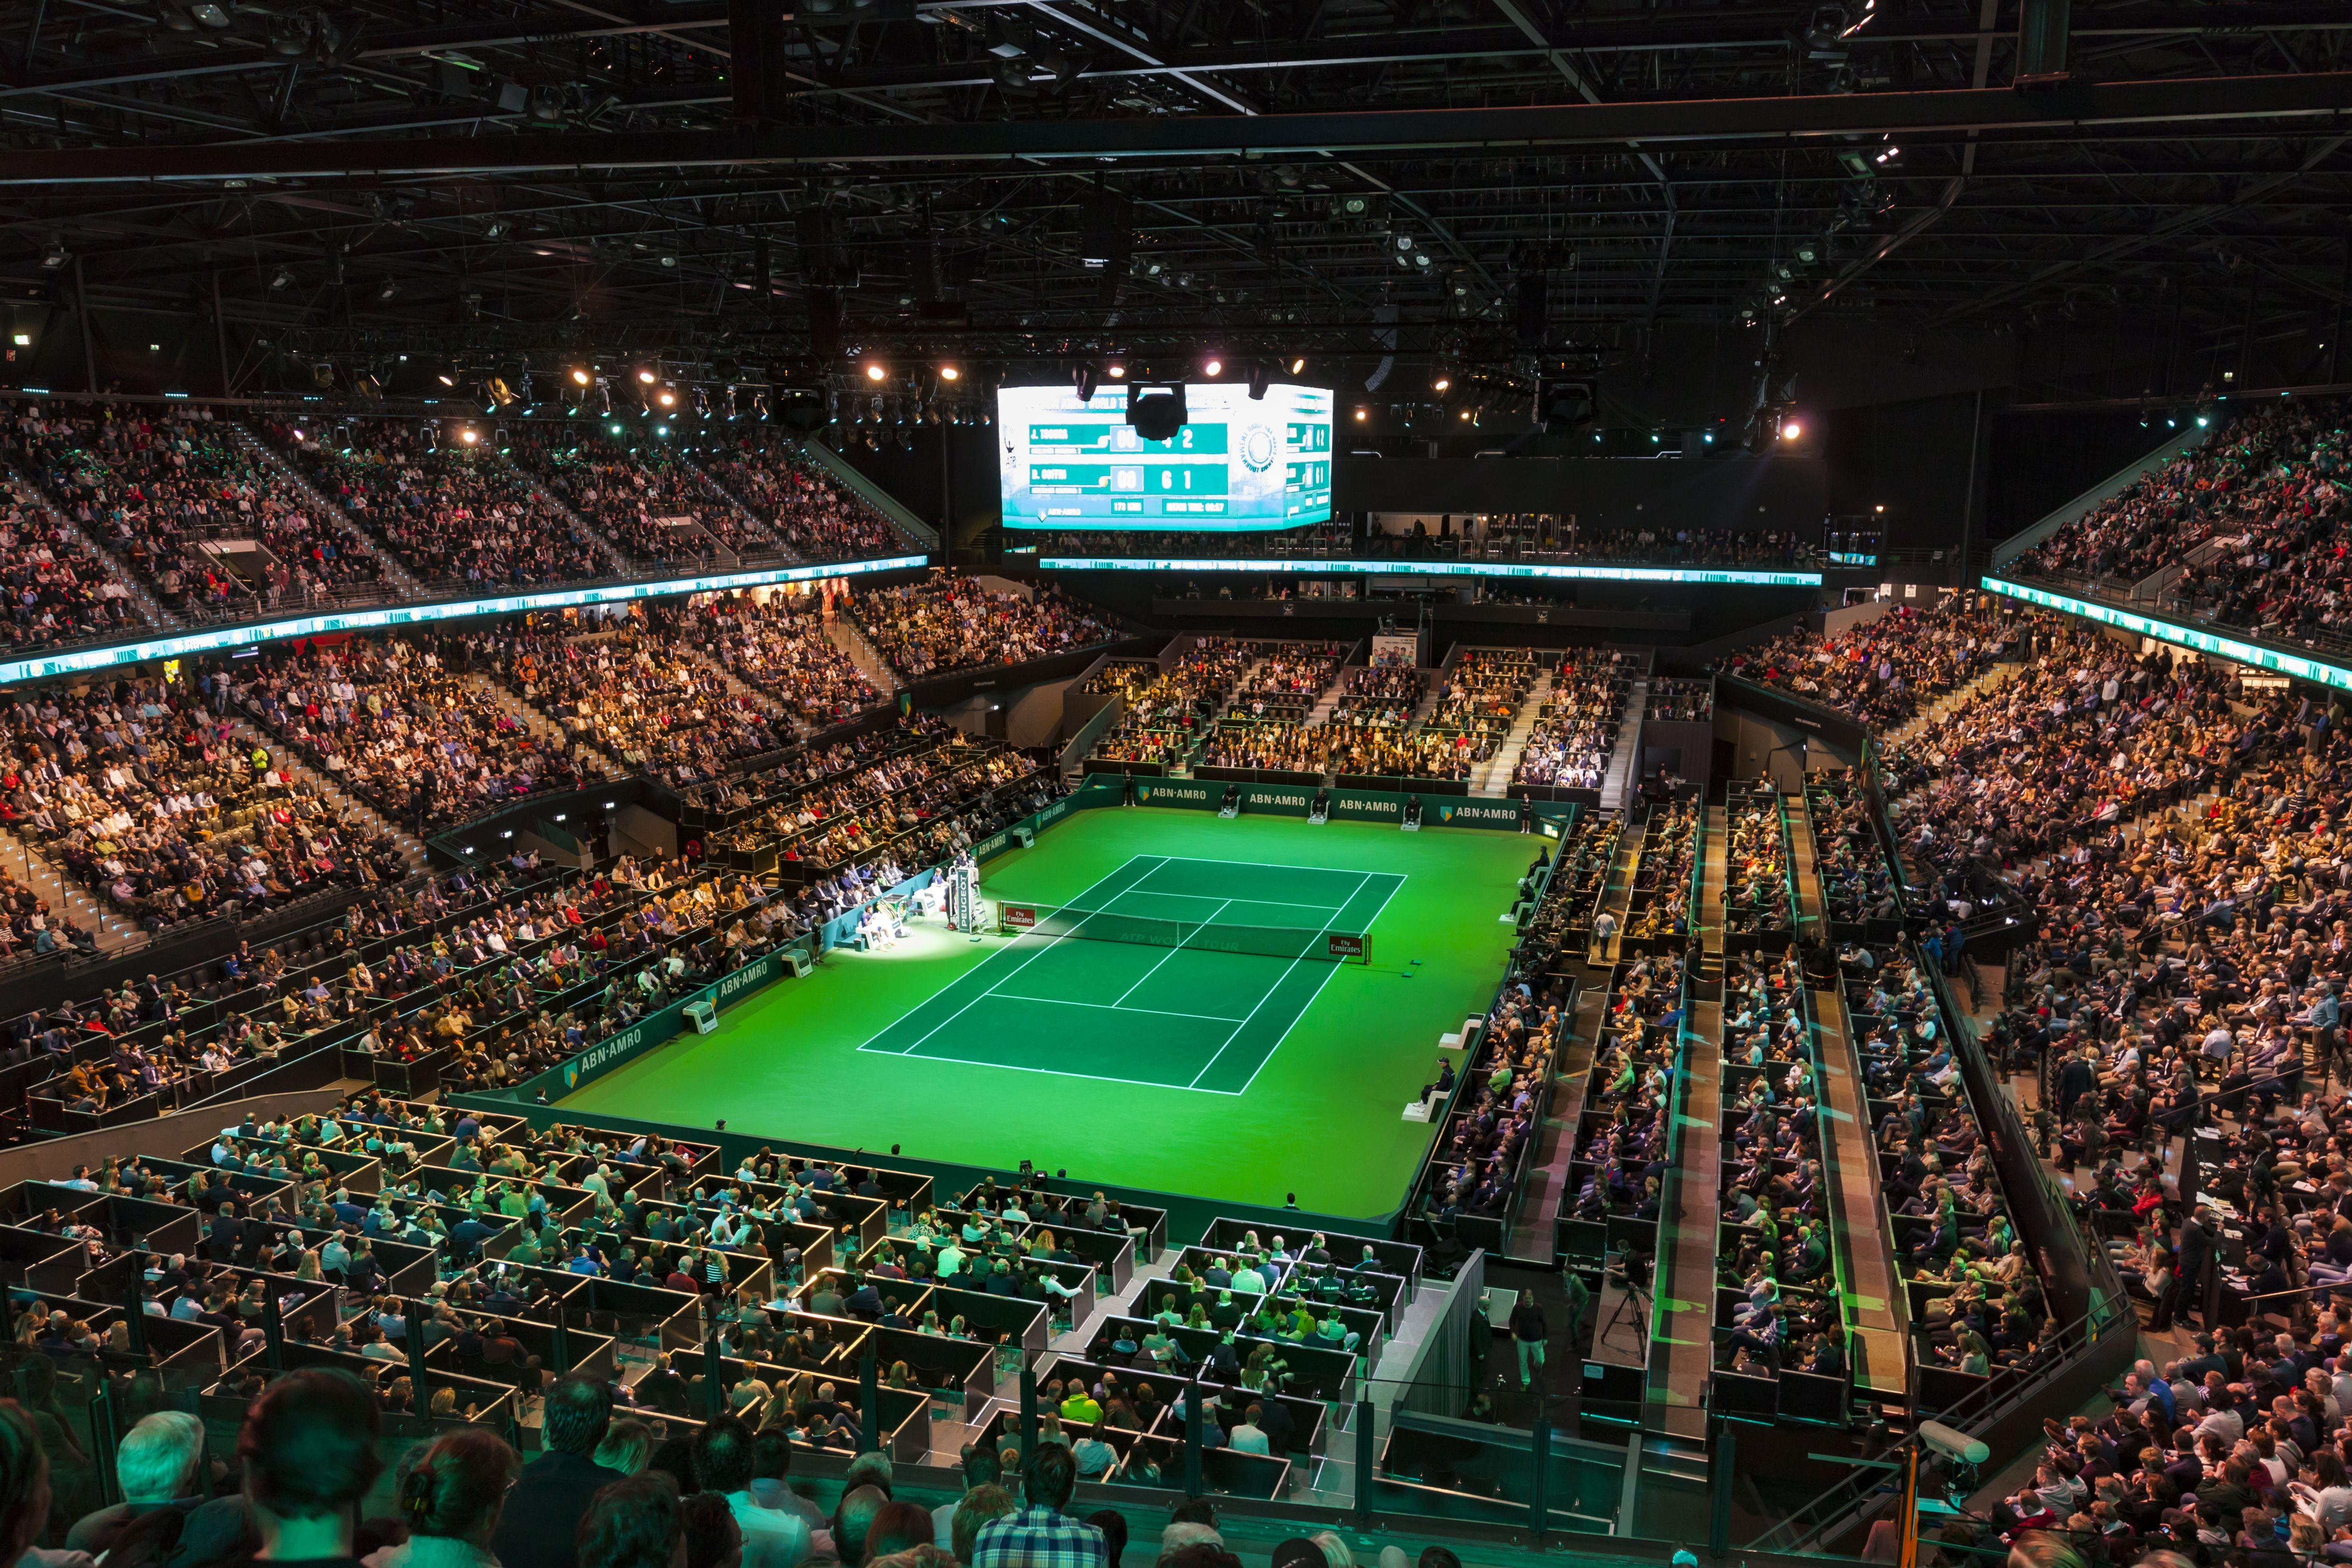 Finale 45e ABN AMRO World Tennis Tournament uitverkocht